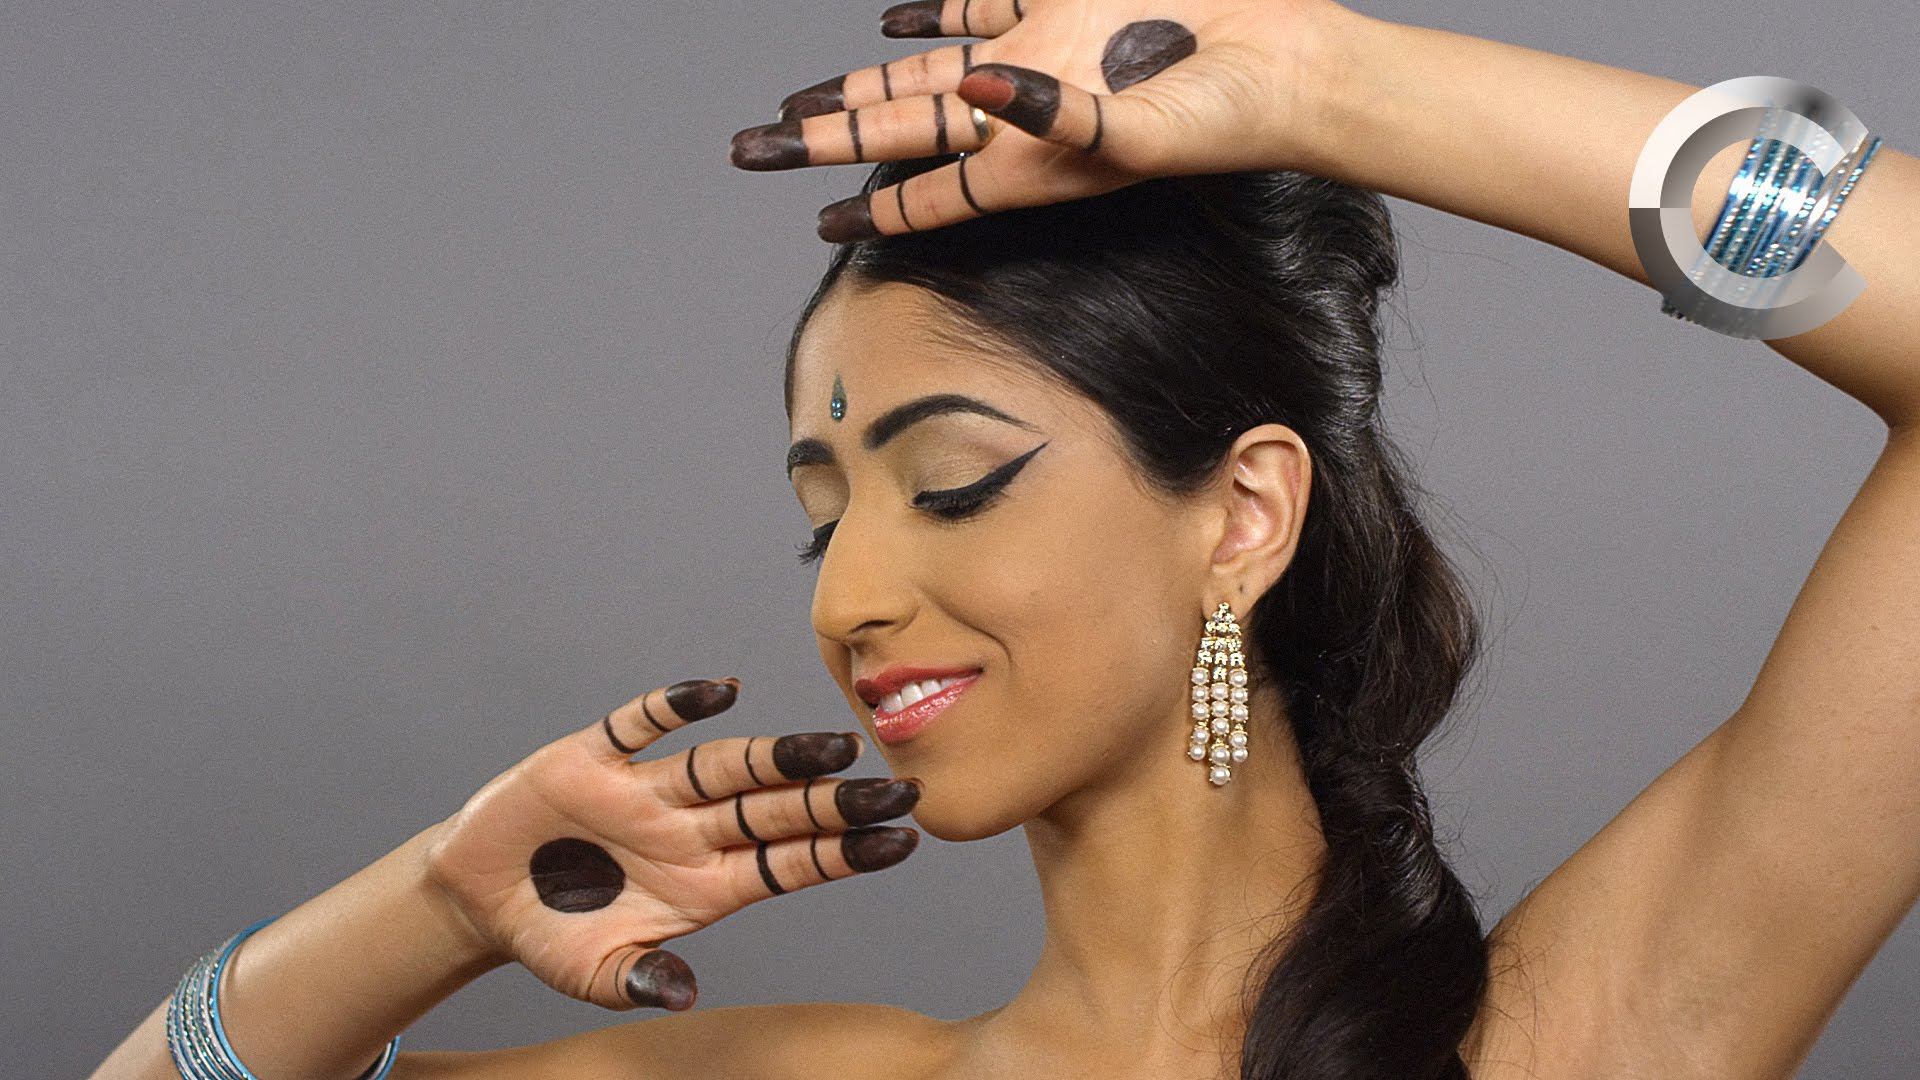 Can't imagine how our women looked in the distant past? Watch the 100-year journey of Indian beauty in just 2 minutes!